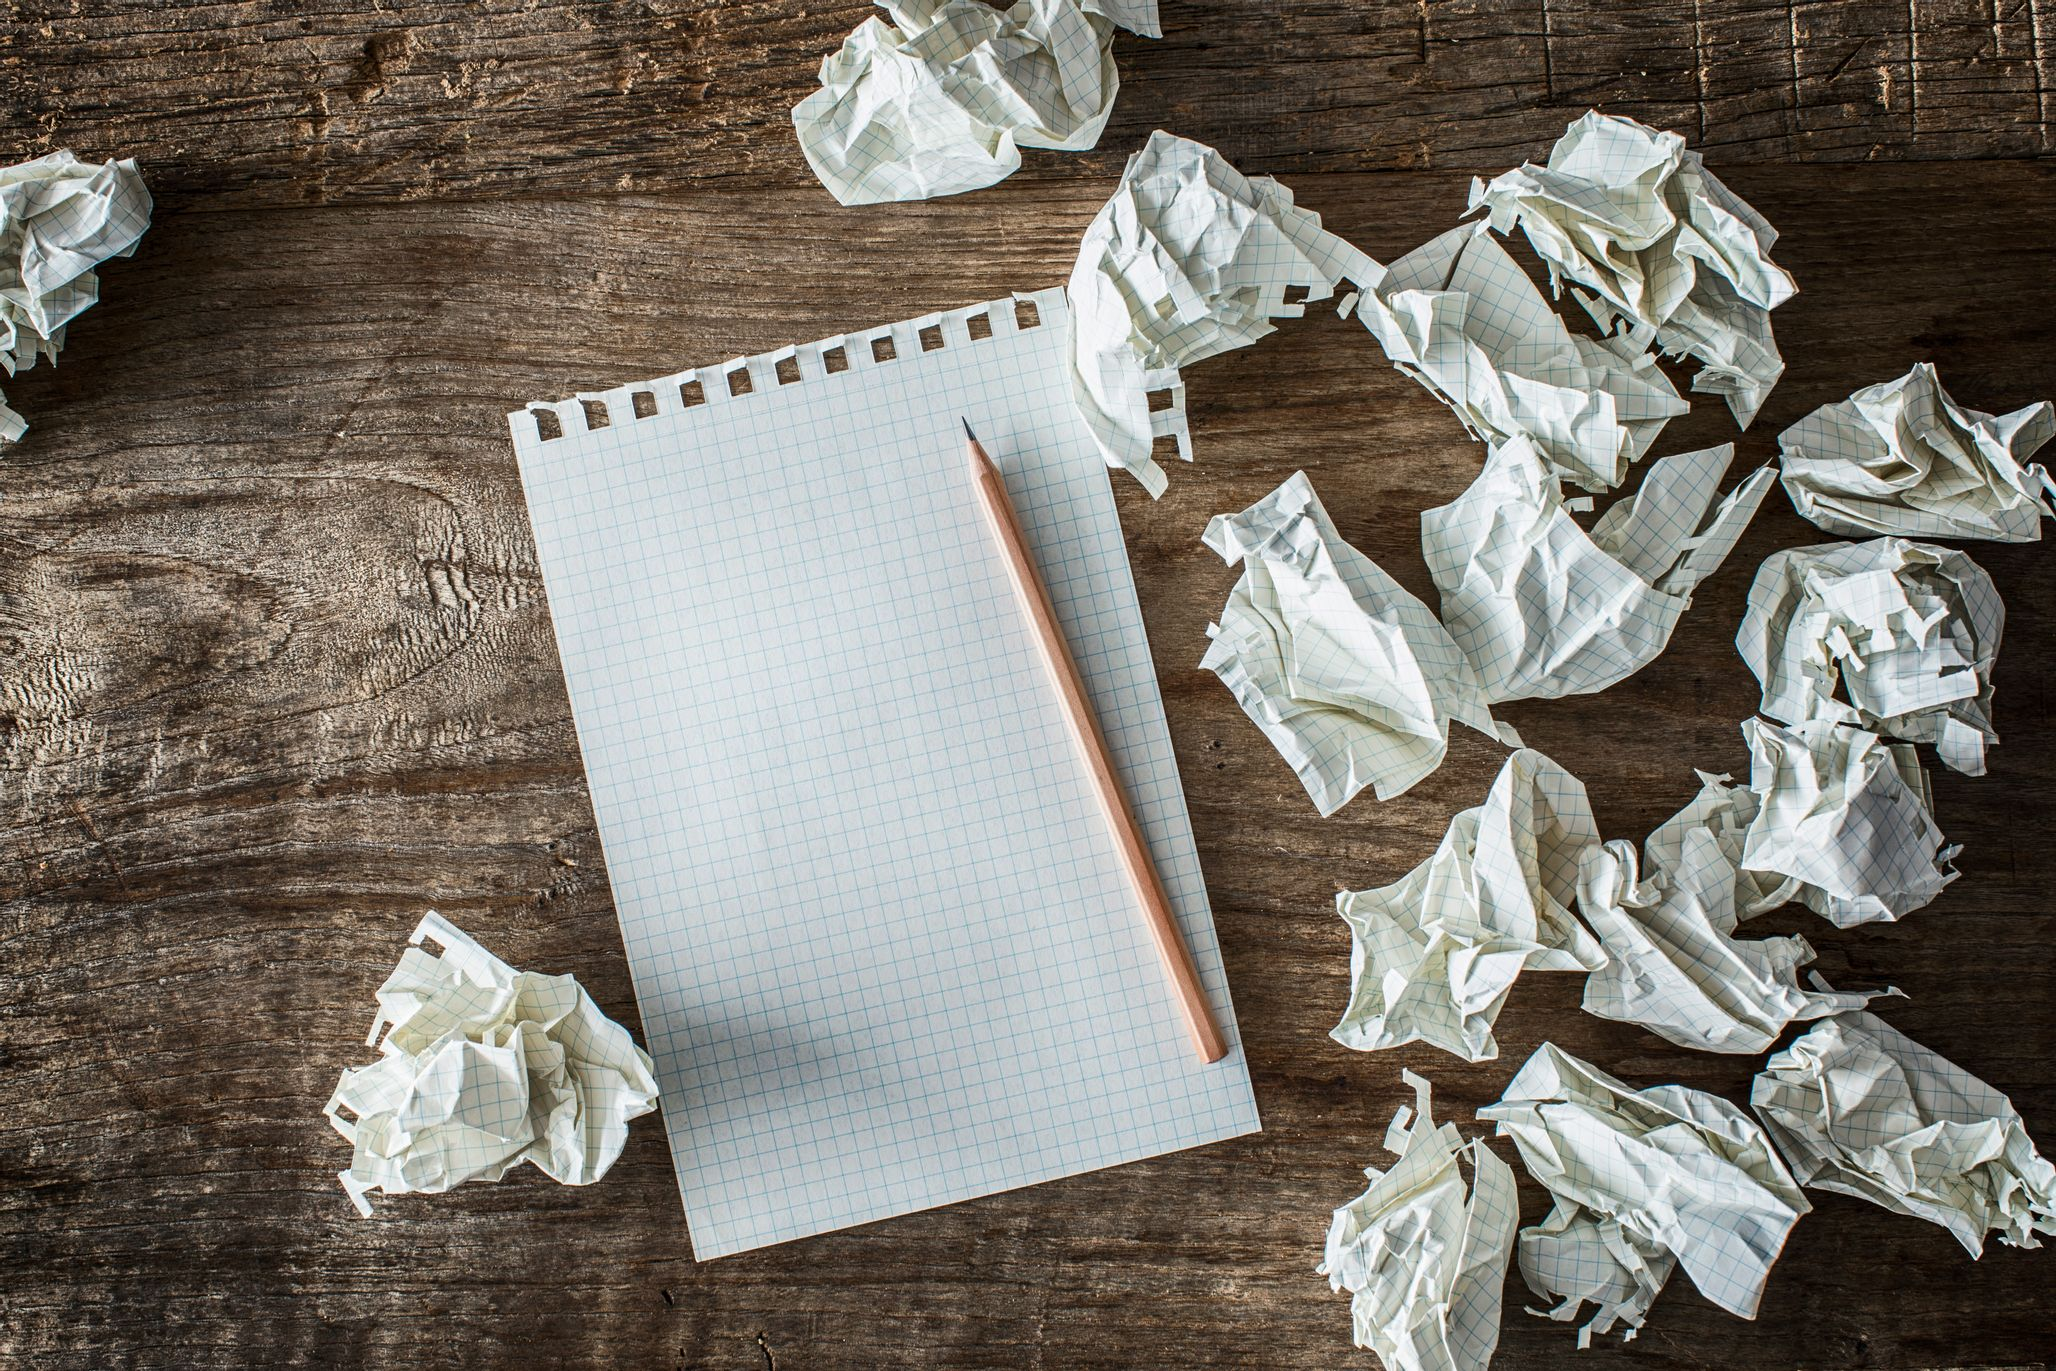 Notepad surrounded by crumpled up paper